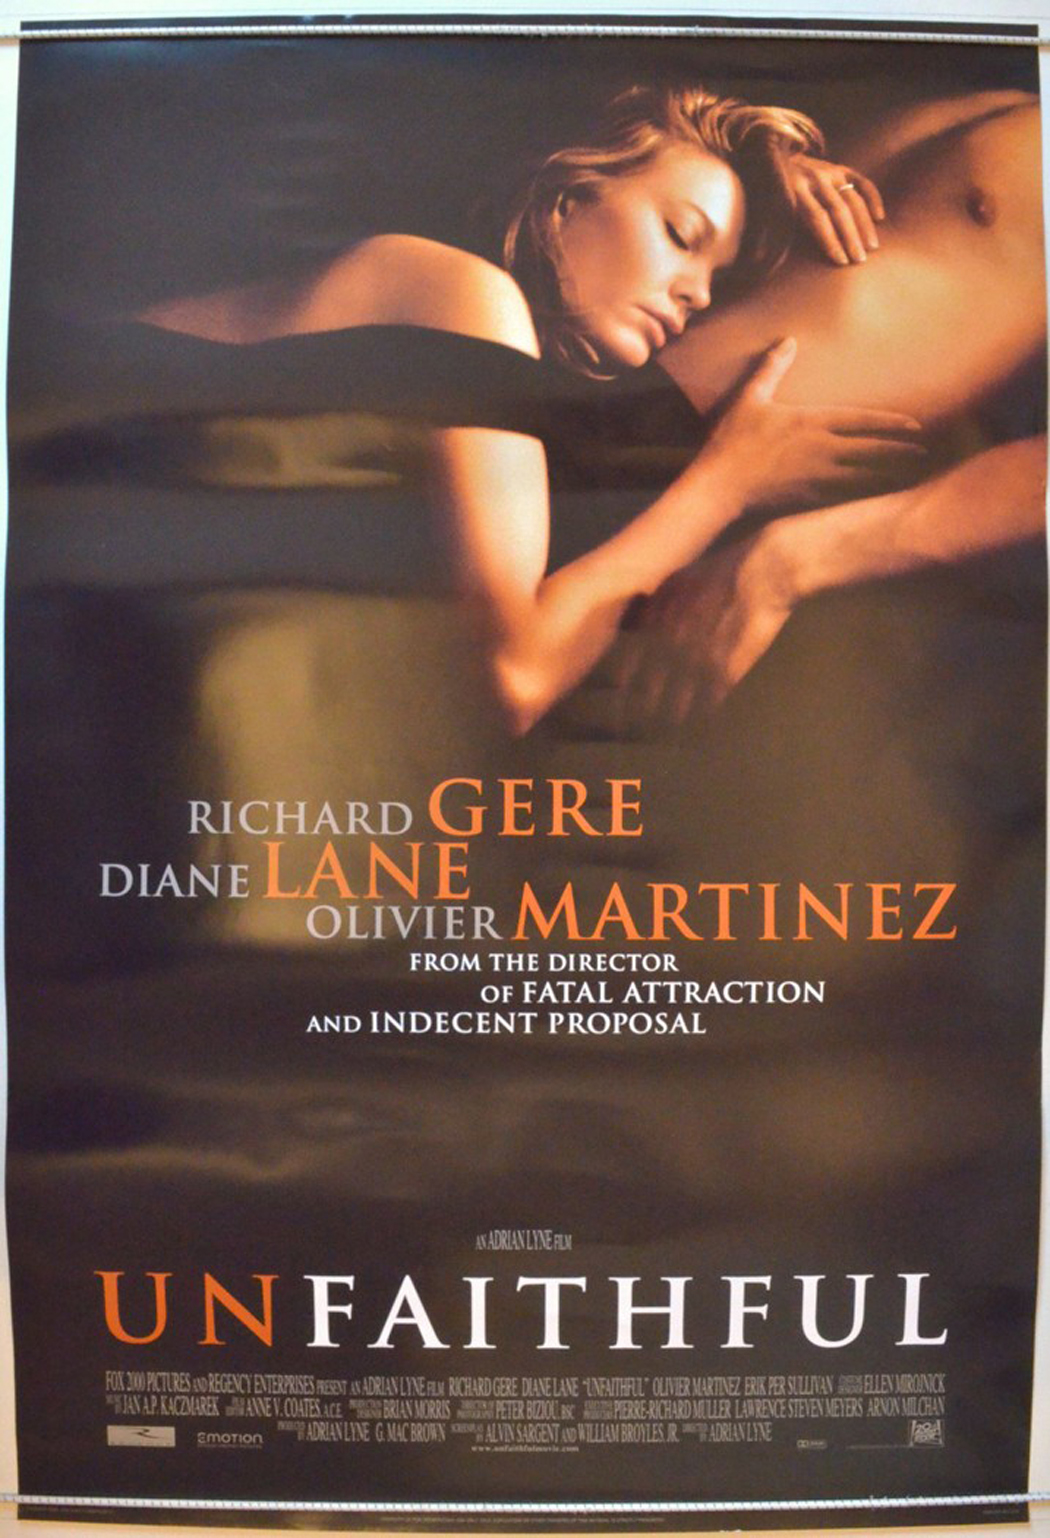 Richard gere diane lane dating 5